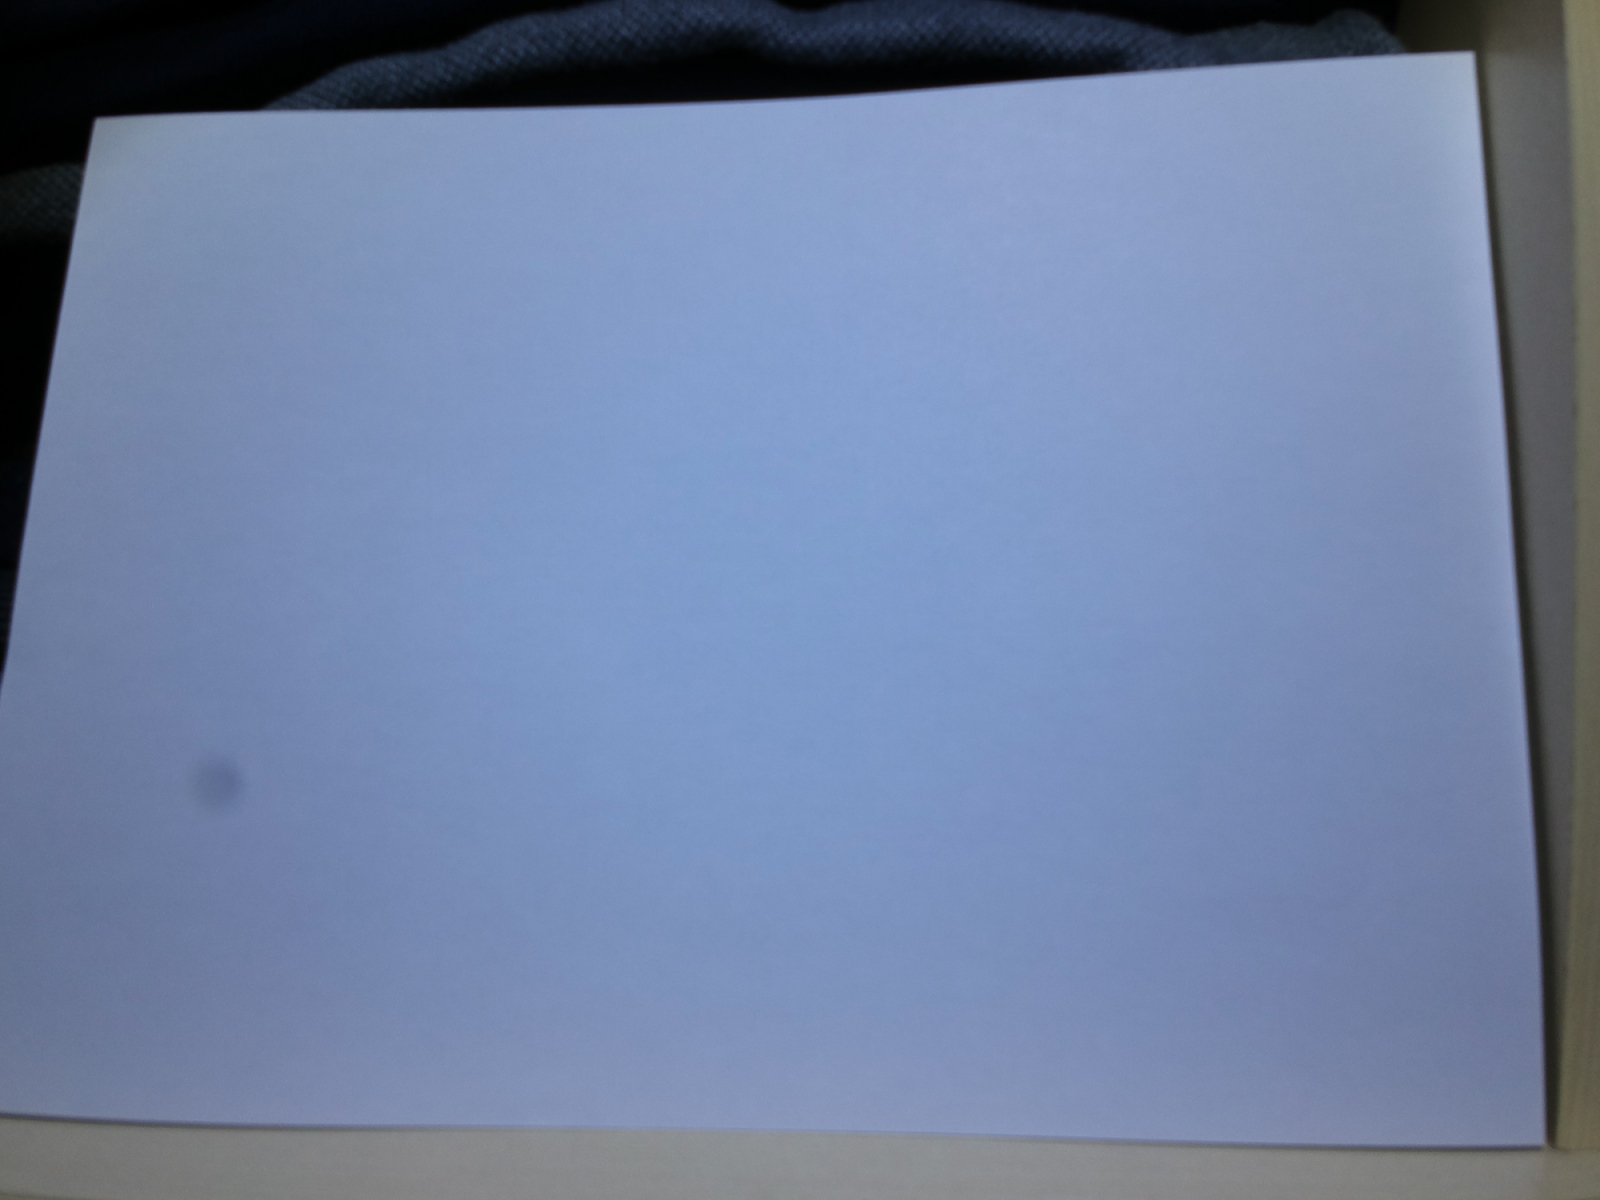 White sheet of paper, dark spot visible 2